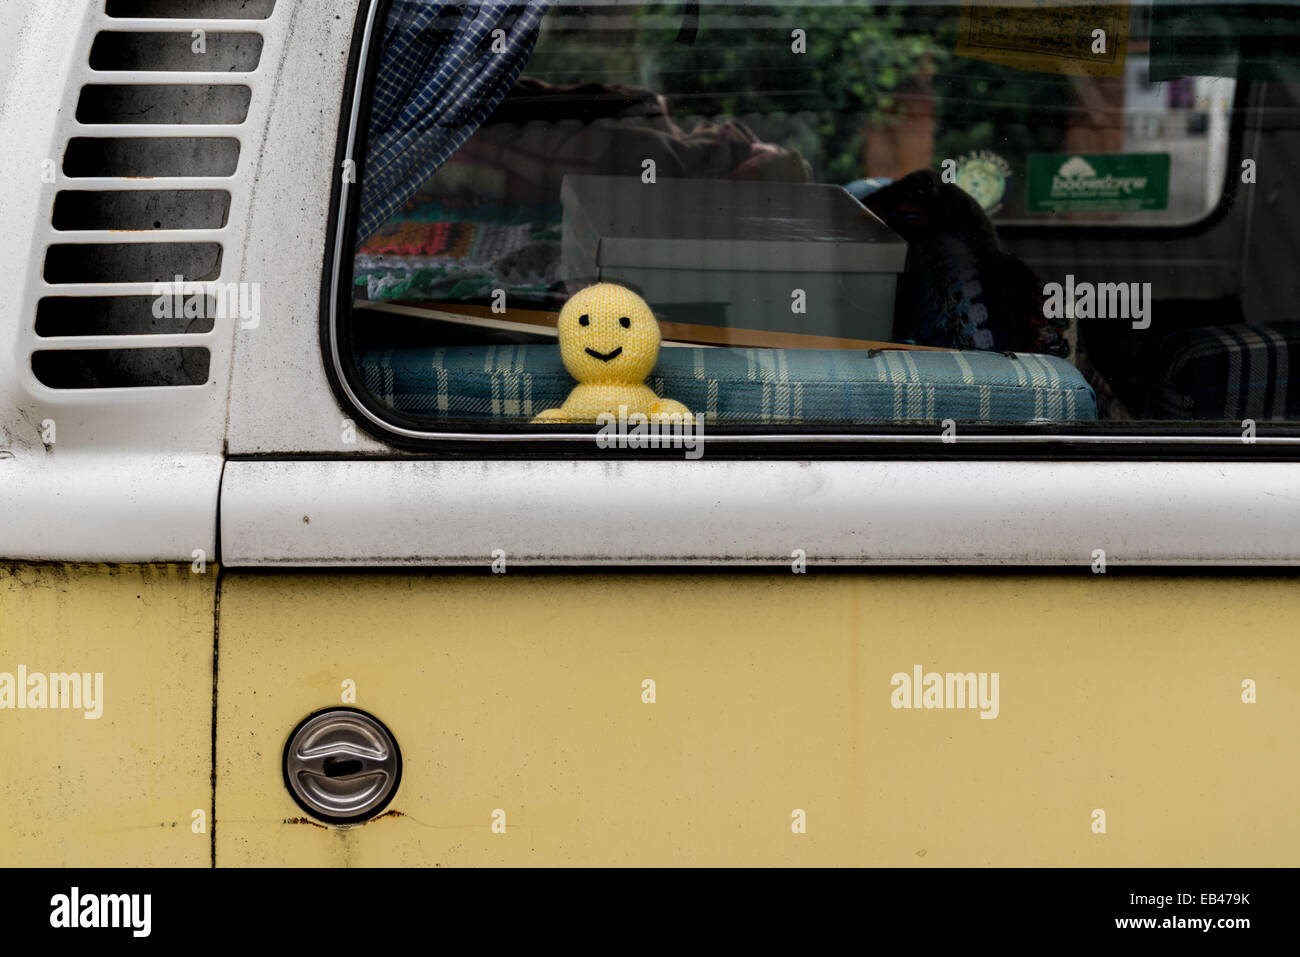 Yellow in yellow: the smiling face of a child's cuddly toy looking out the window of a VW camper van - Stock Image